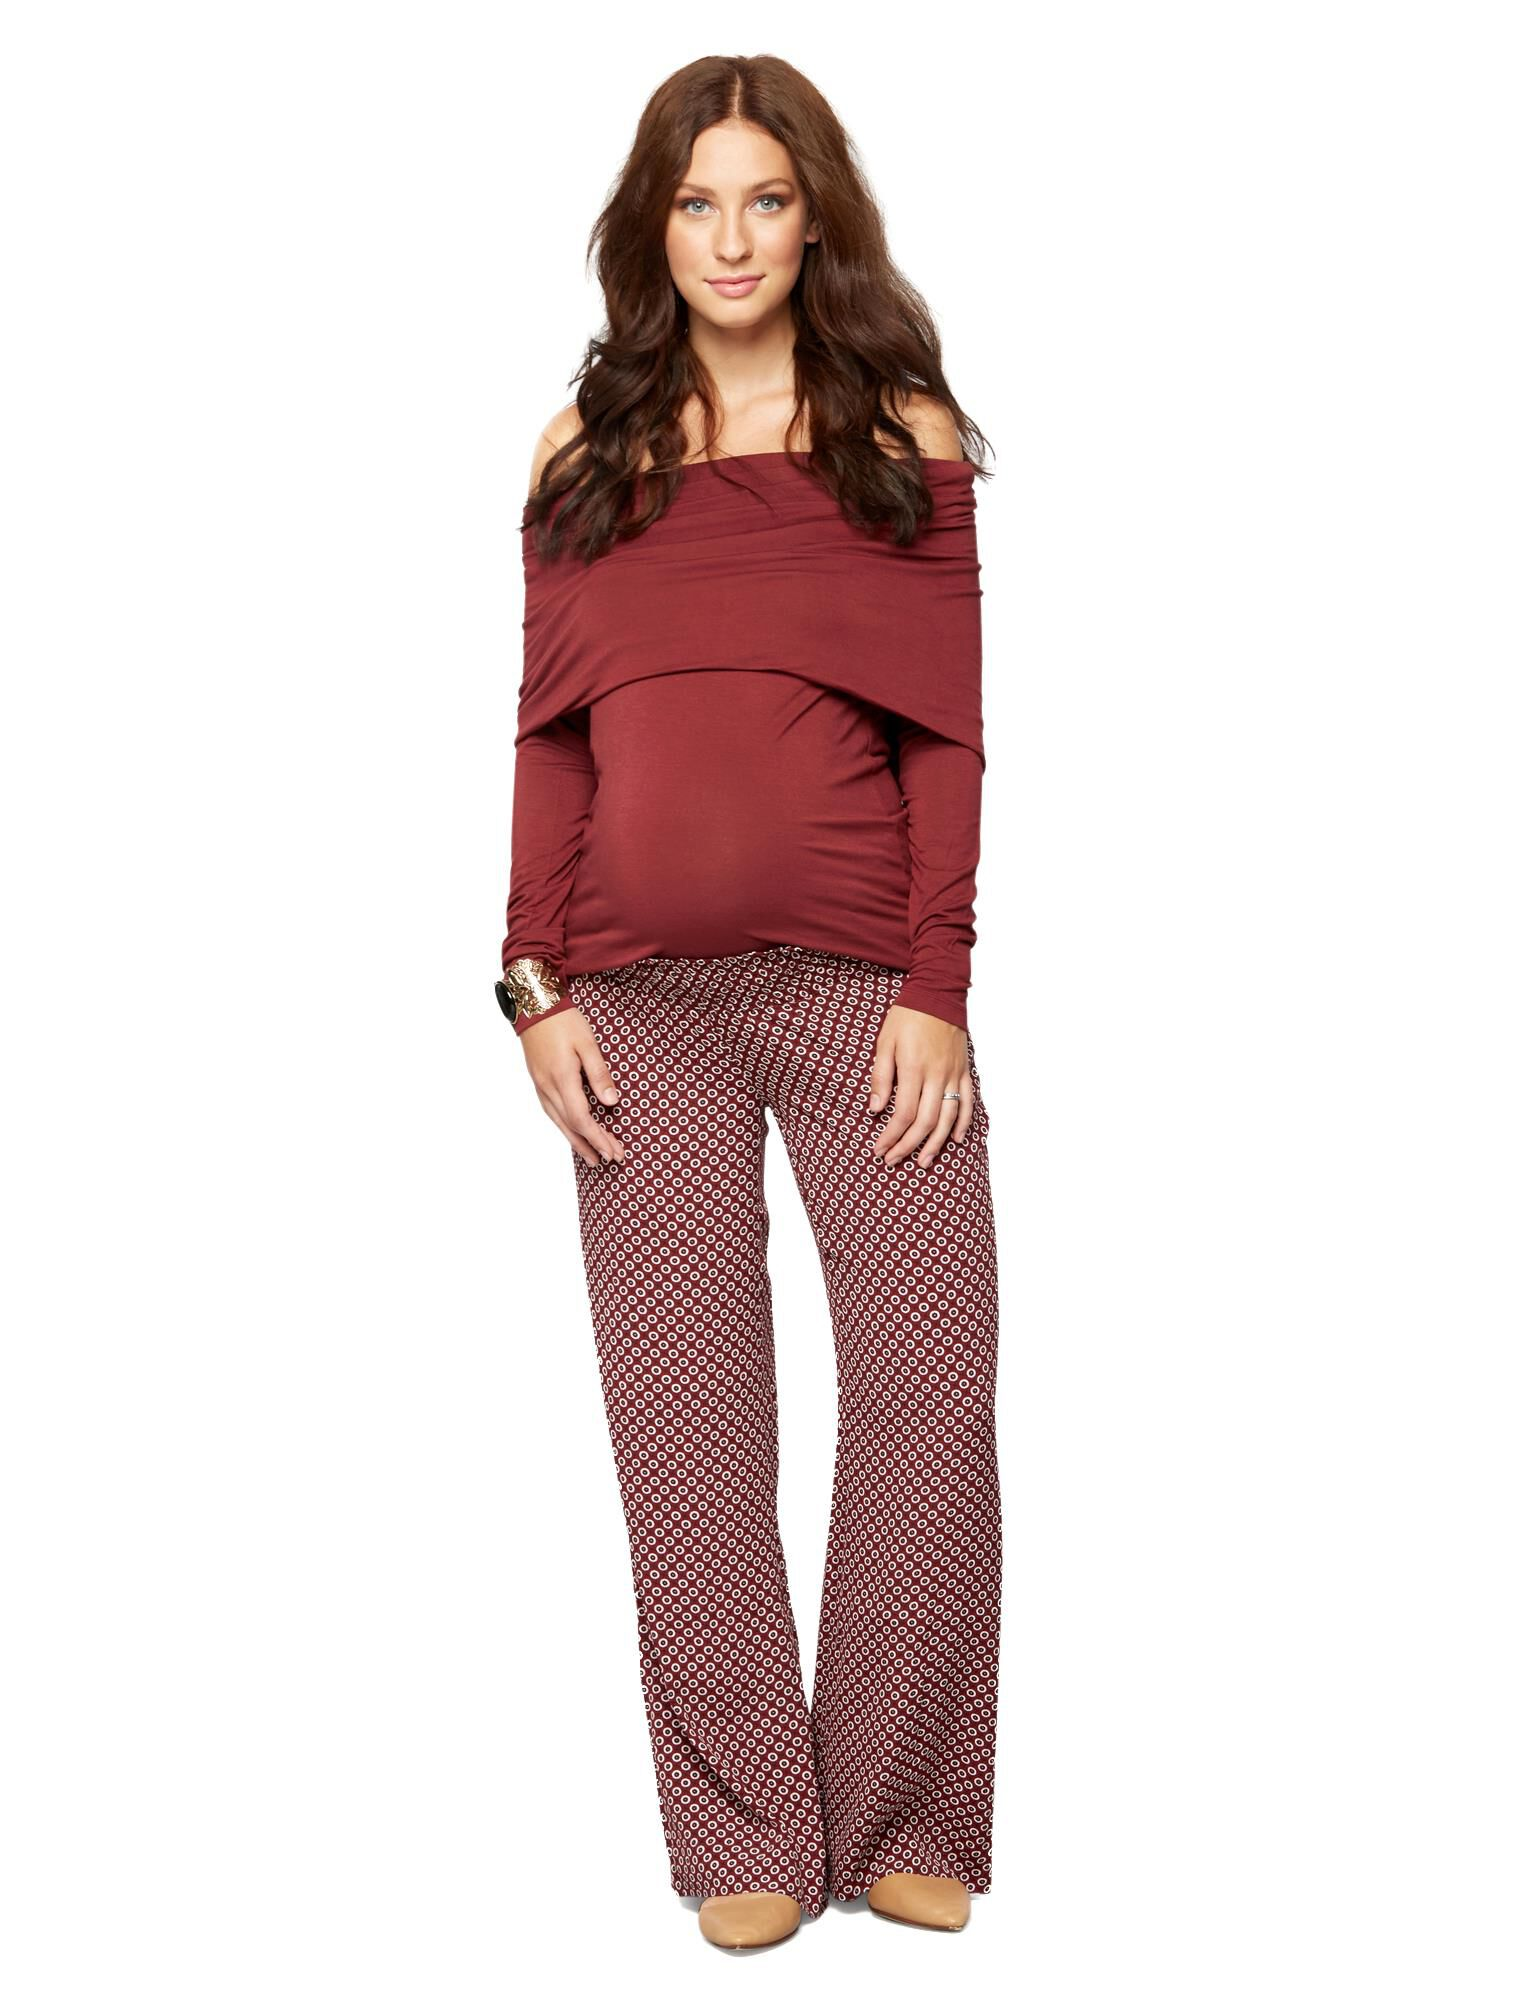 Under Belly Crepe Wide Leg Maternity Pants